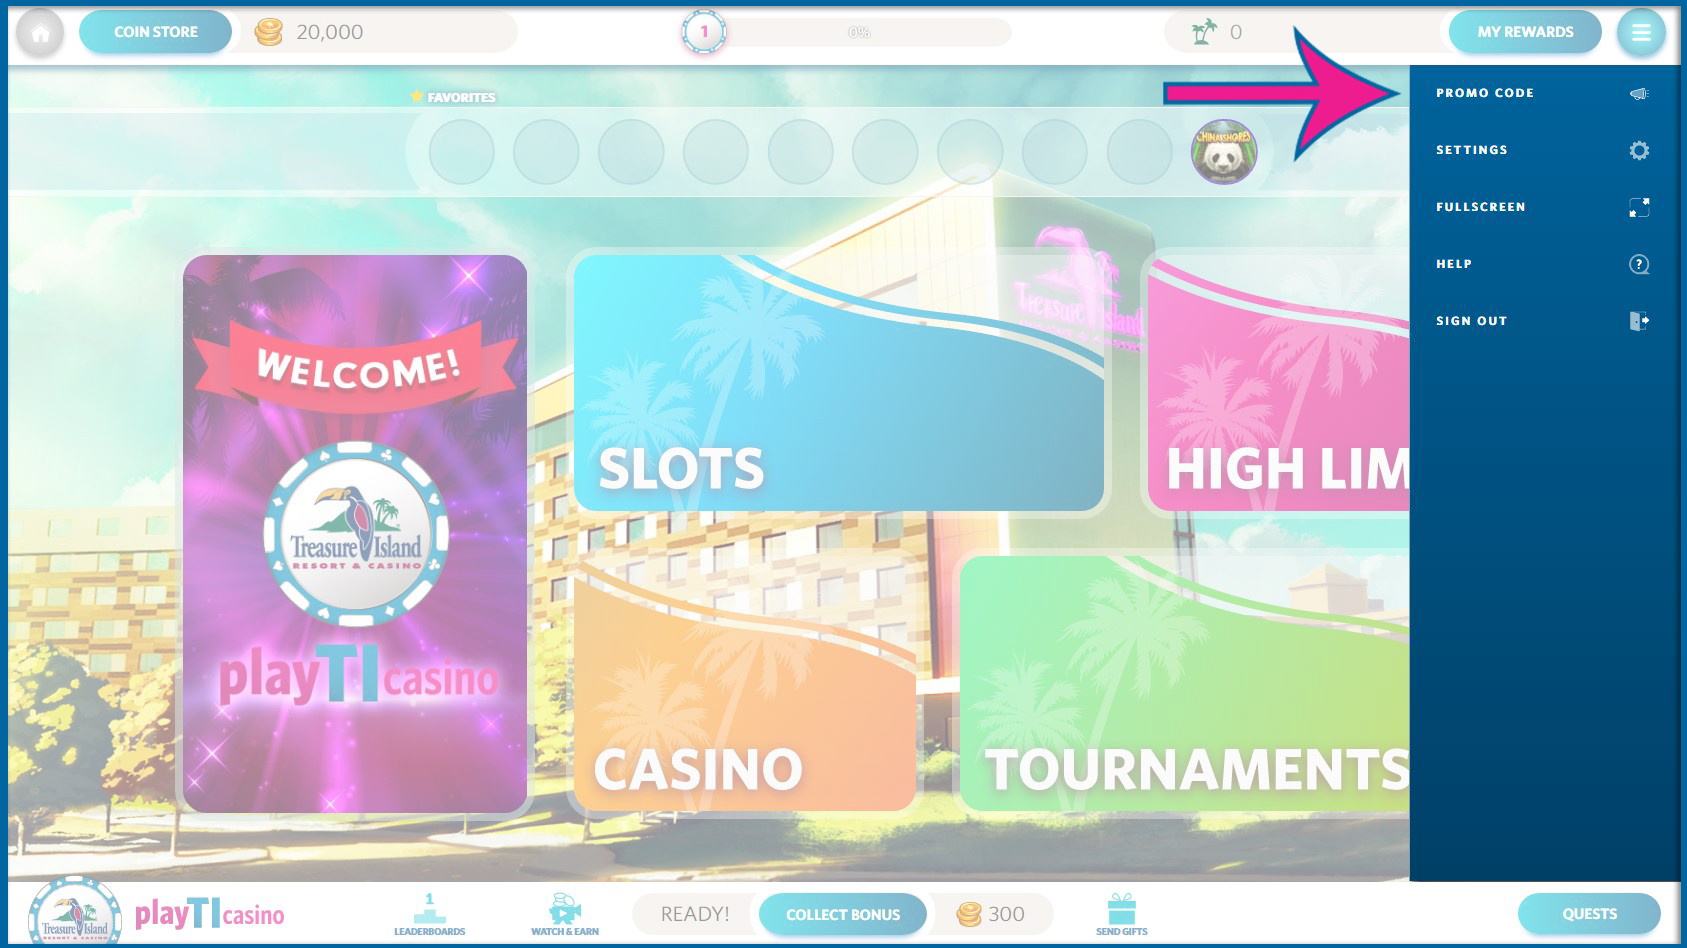 how to redeem a free promo code playticasino help center